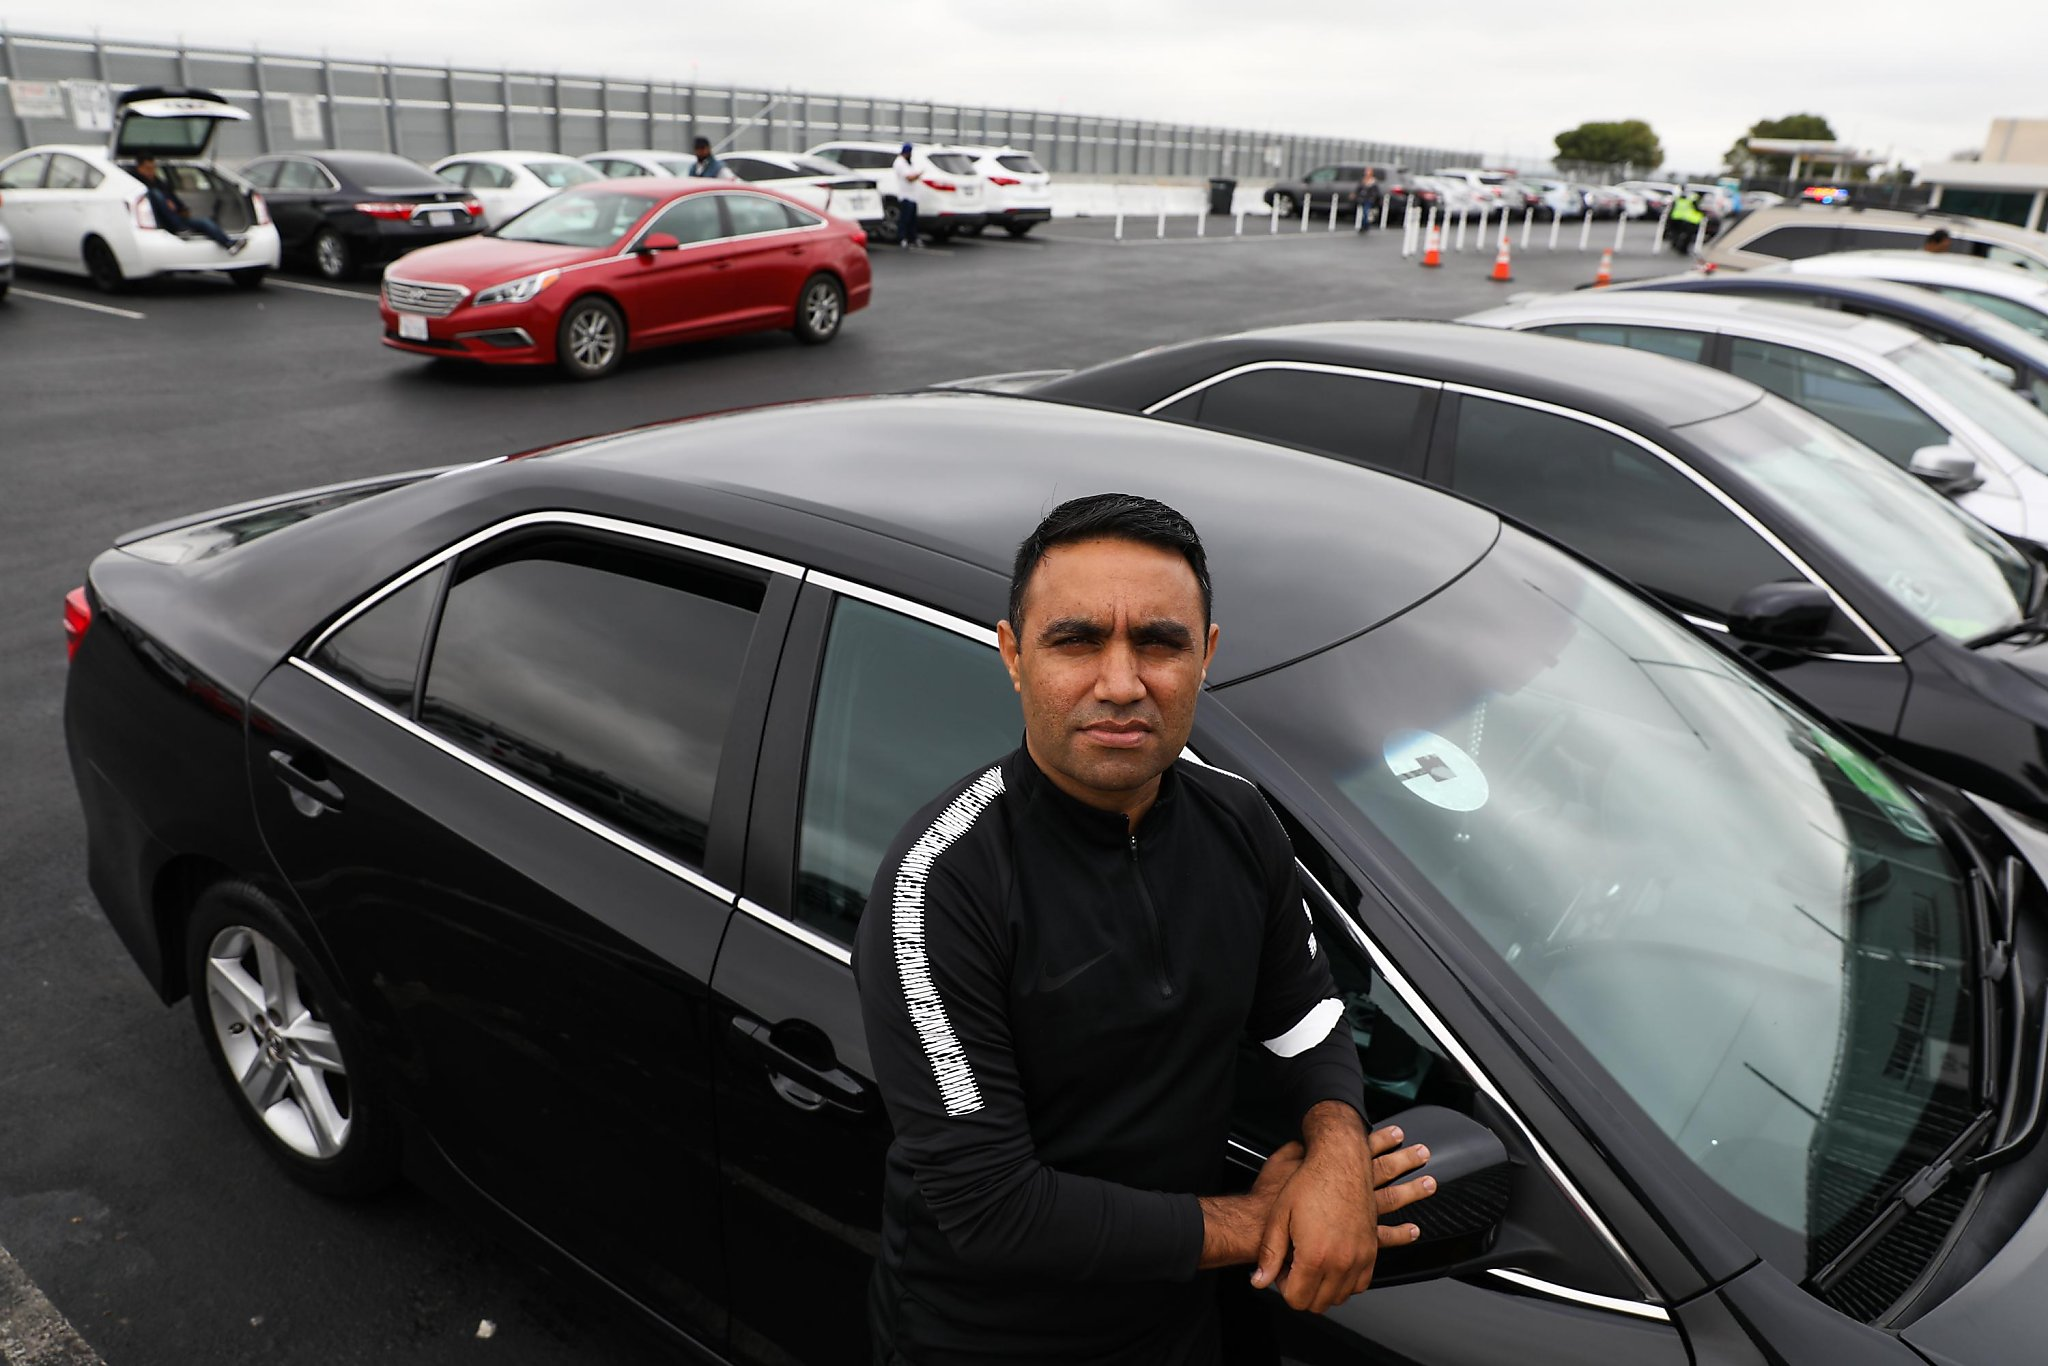 No fair, say Uber drivers slapped with SFO tickets - SFChronicle com